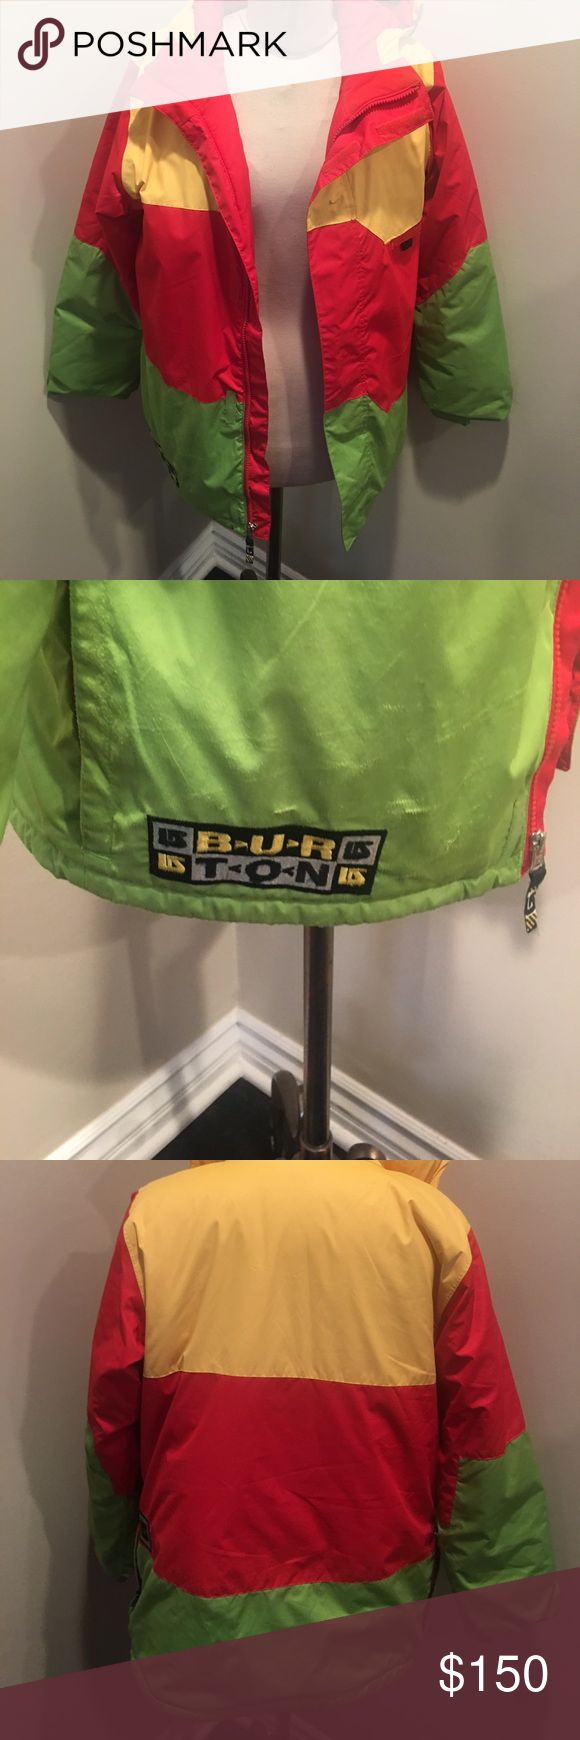 Men burton snowboarding jacket Bright colorful men burton snowboarding jacket. Wore a few times. Have button to clip onto your snowboarding pants Burton Jackets & Coats Ski & Snowboard